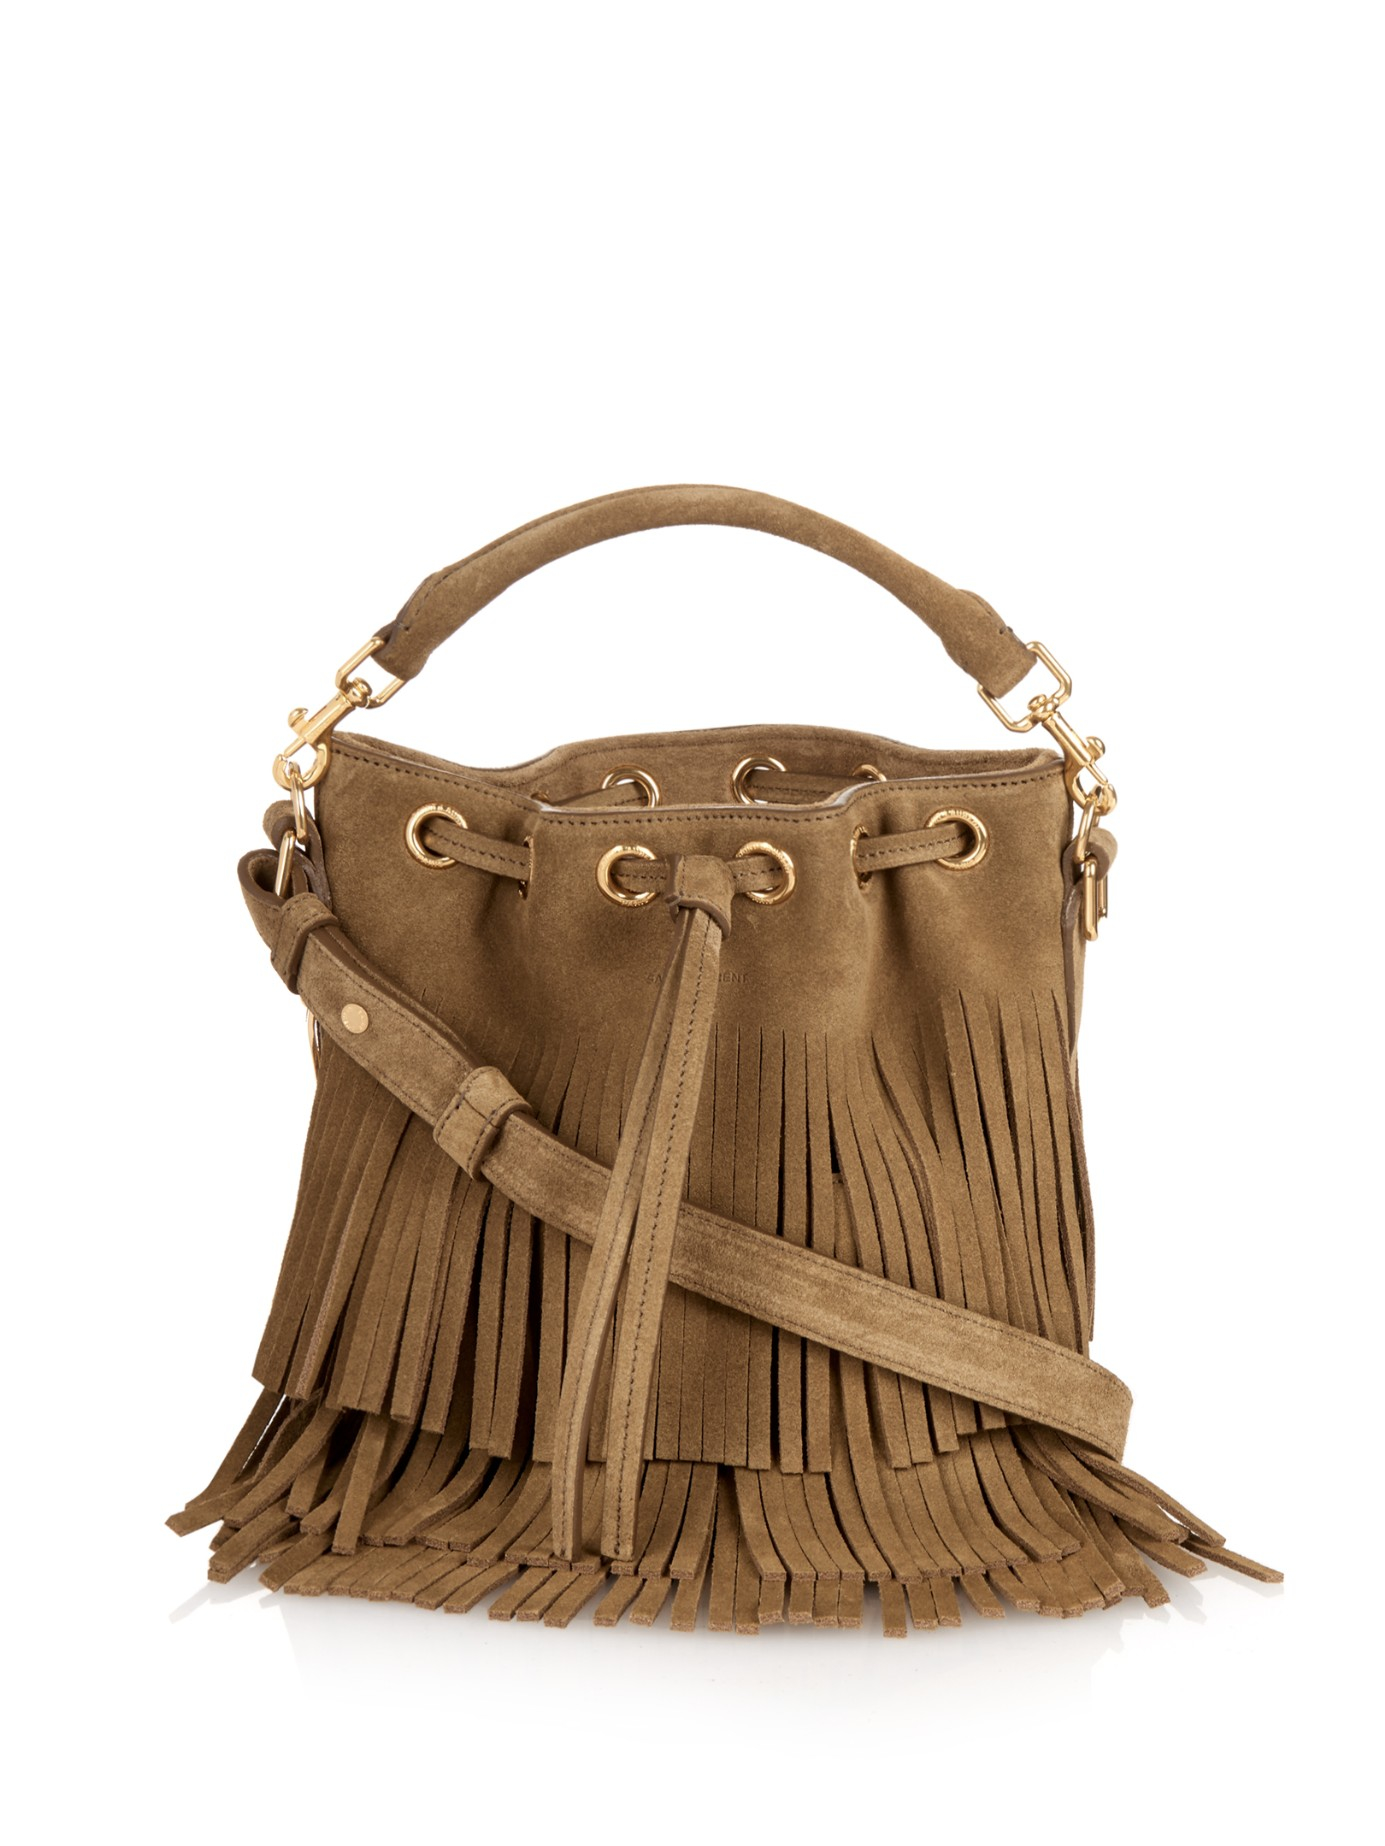 a7ed646662 Gallery. Previously sold at: MATCHESFASHION.COM · Women's Fringed Bags  Women's Saint Laurent Emmanuelle